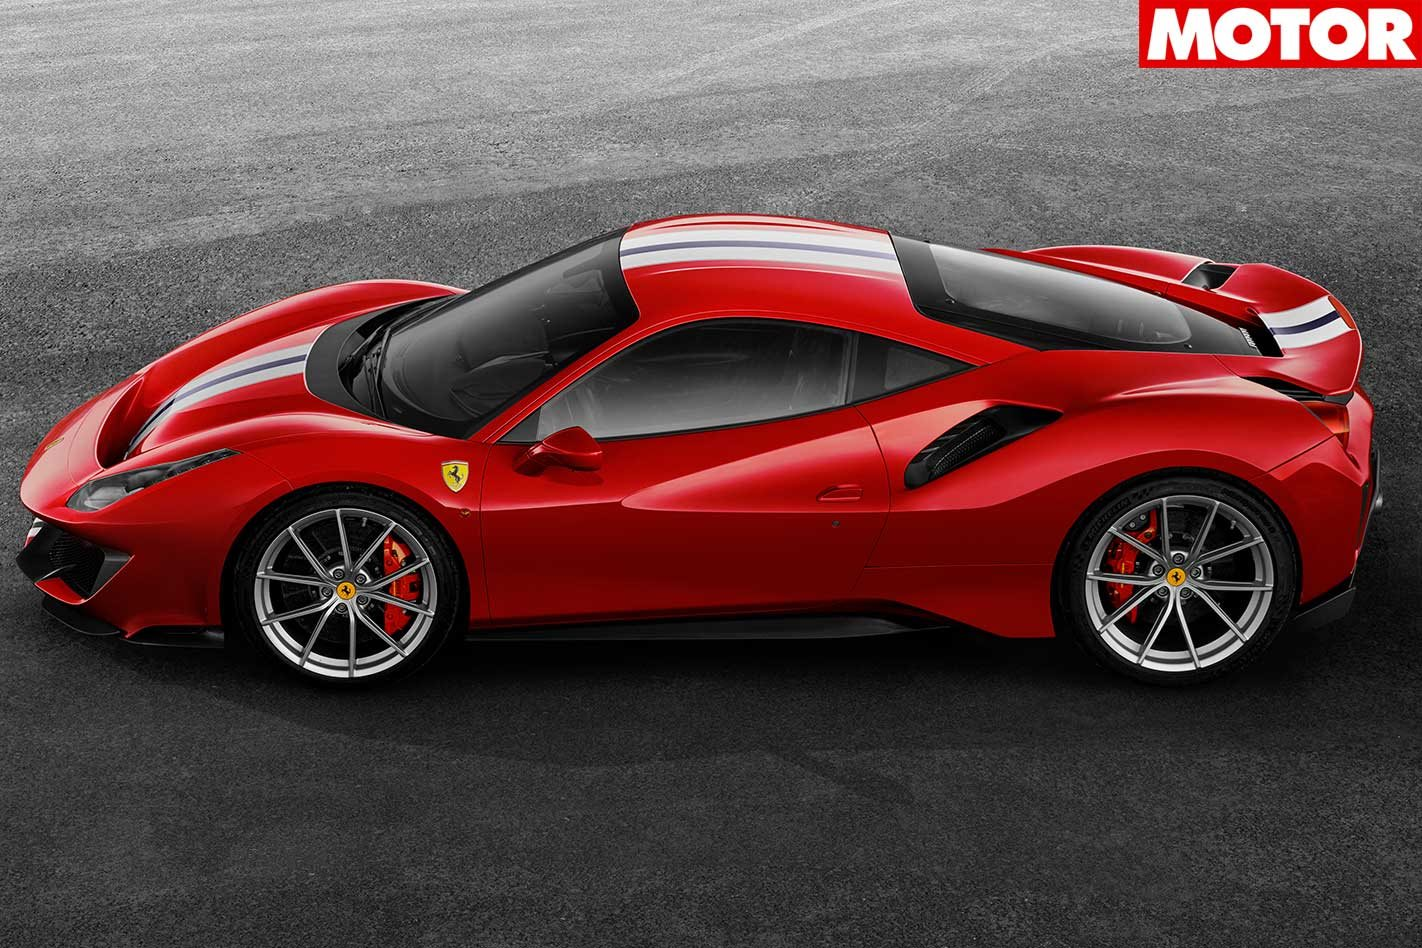 Pista Boasts Ferrari's Most Powerful V-8 Ever